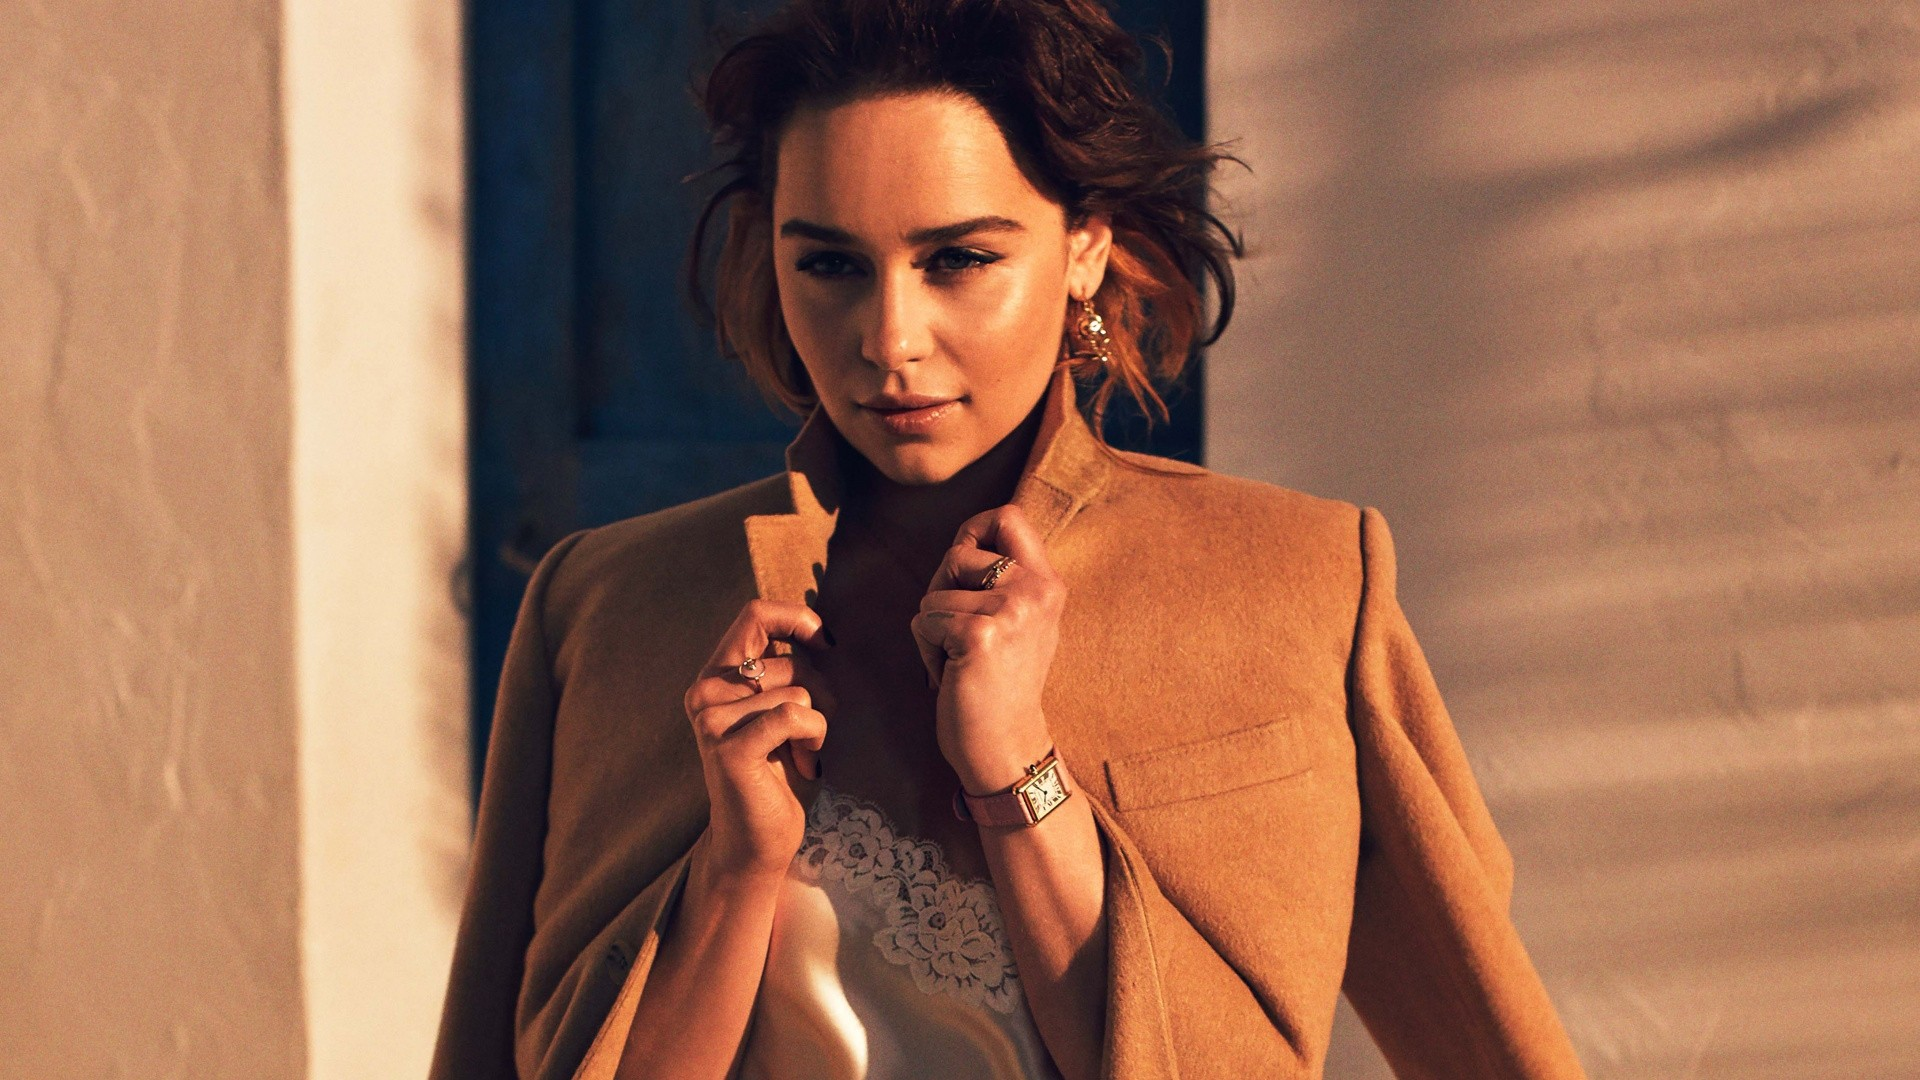 Emilia Clarke good wallpaper hd